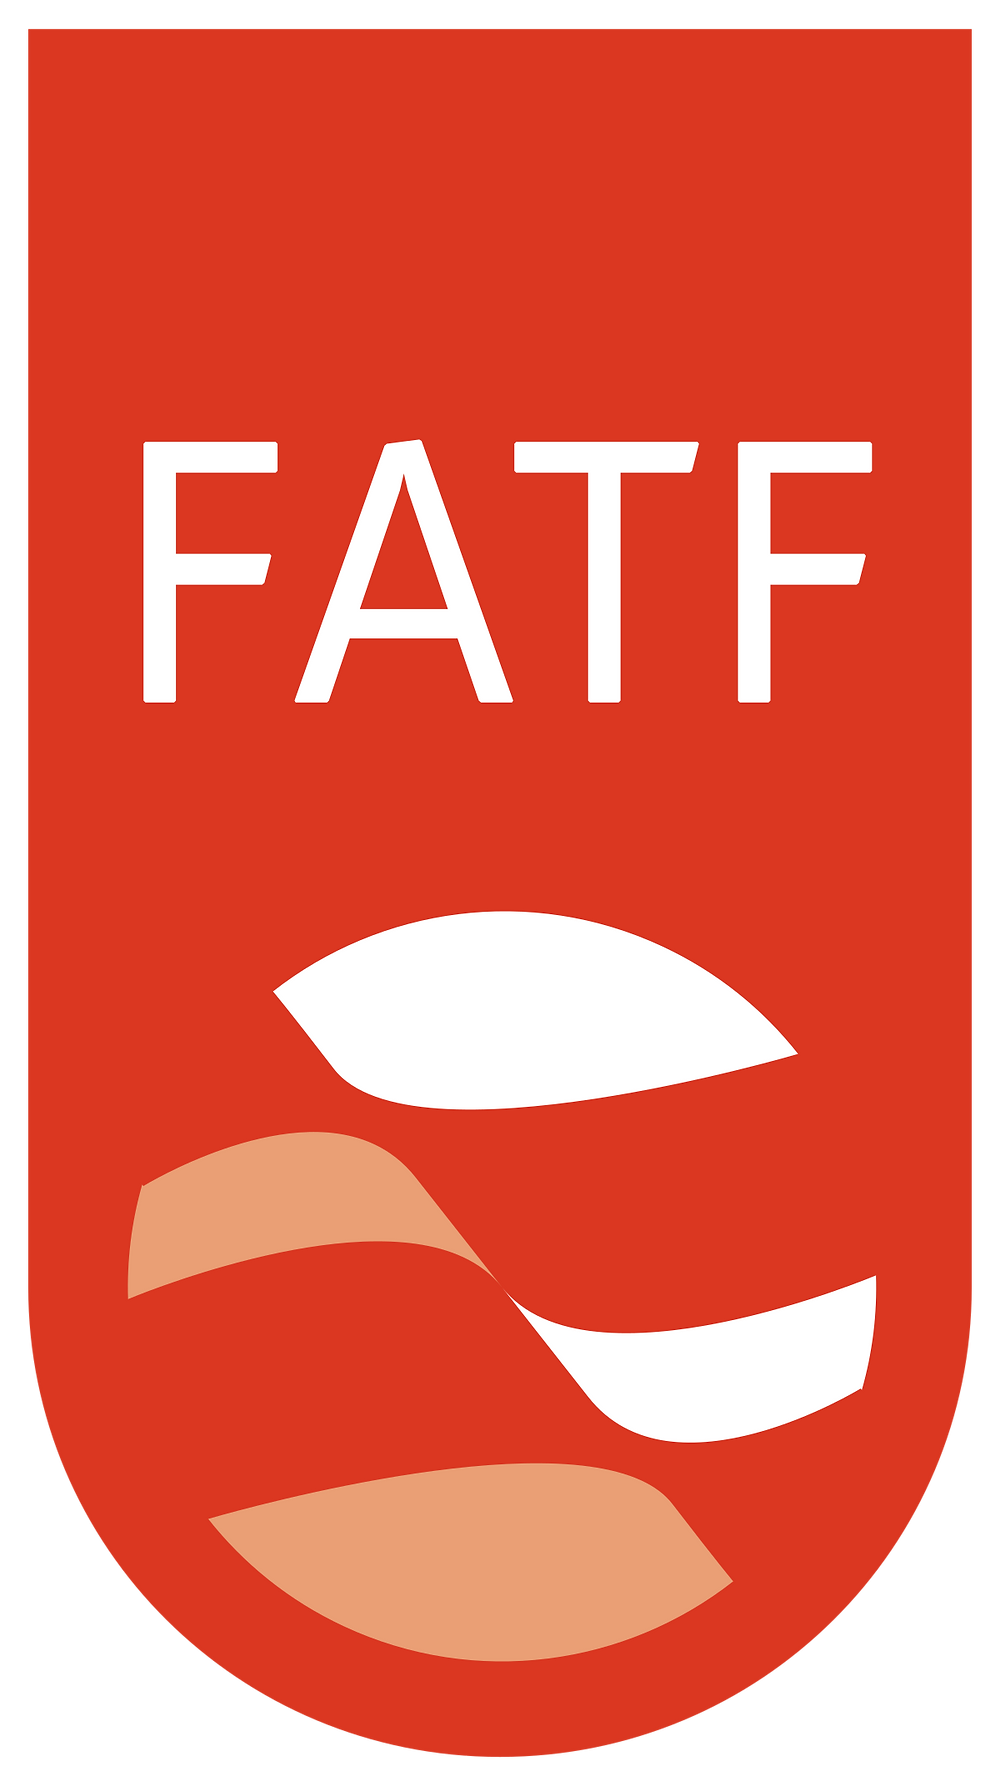 FATF red and white logo